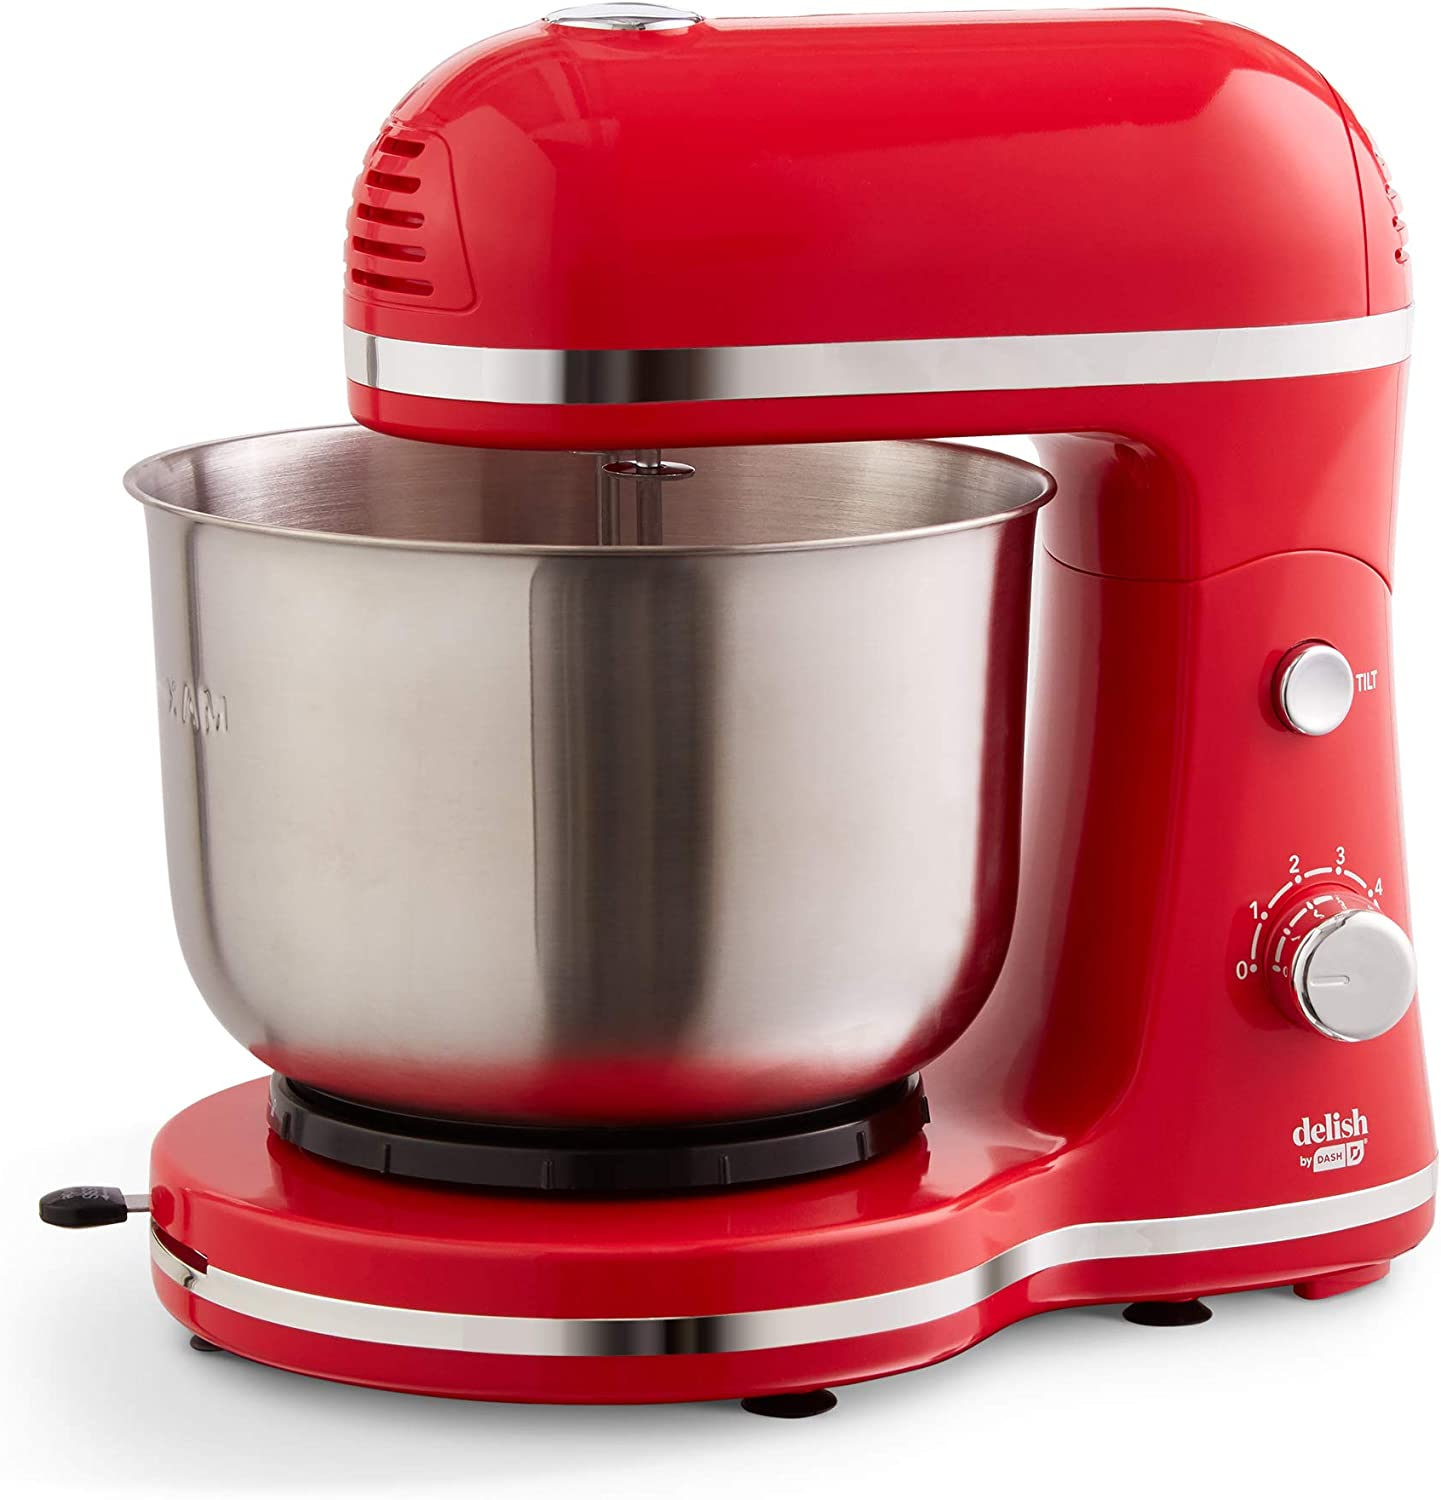 Delish by DASH Compact Stand Mixer 3.5 Quart with Beaters & Dough Hooks Included - Red (DCSM350GBRD02)